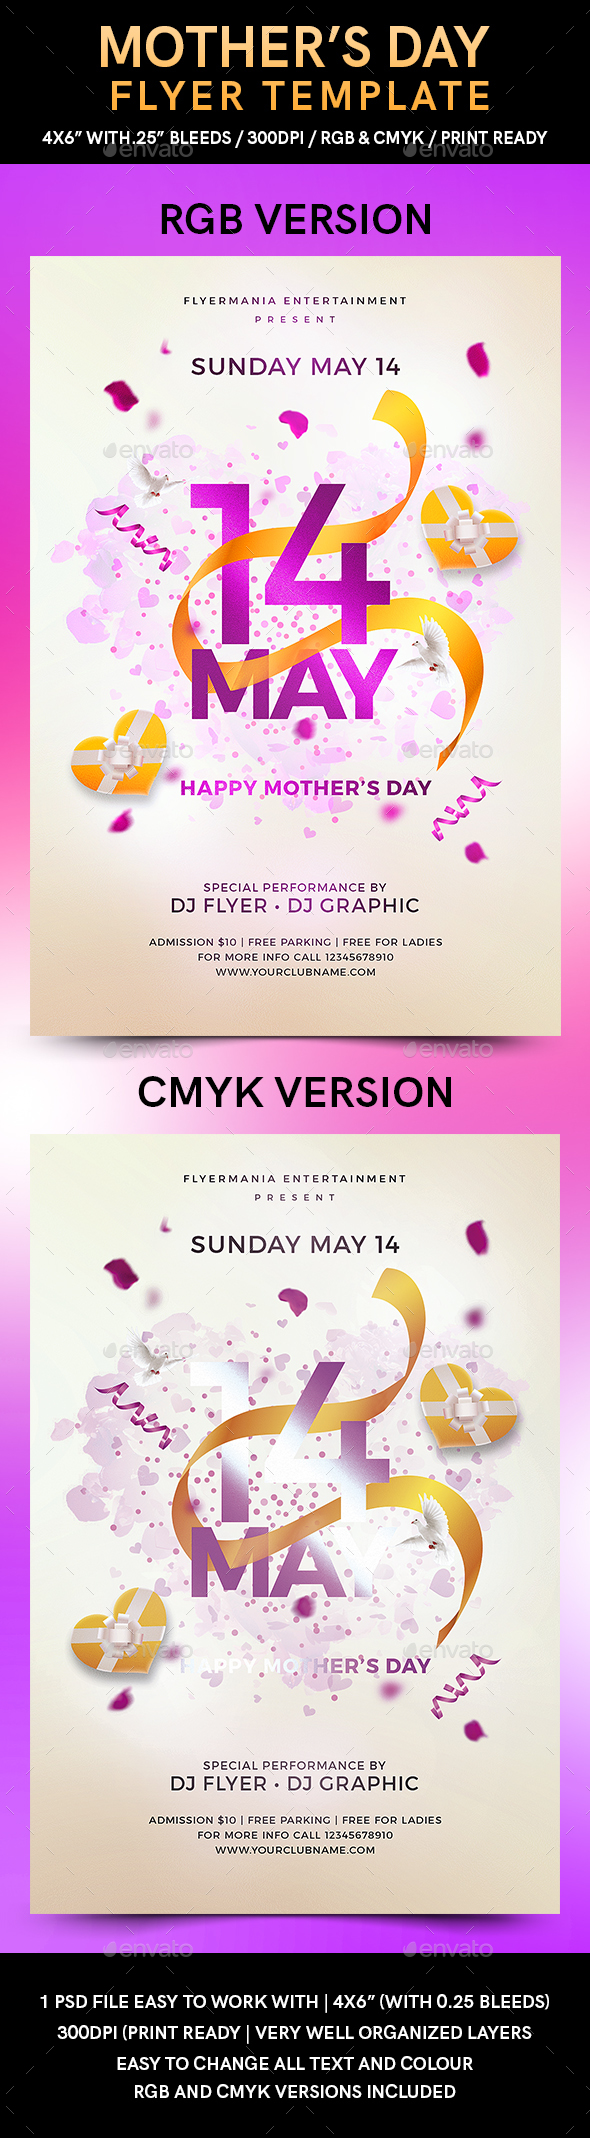 Mother's Day Flyer Template